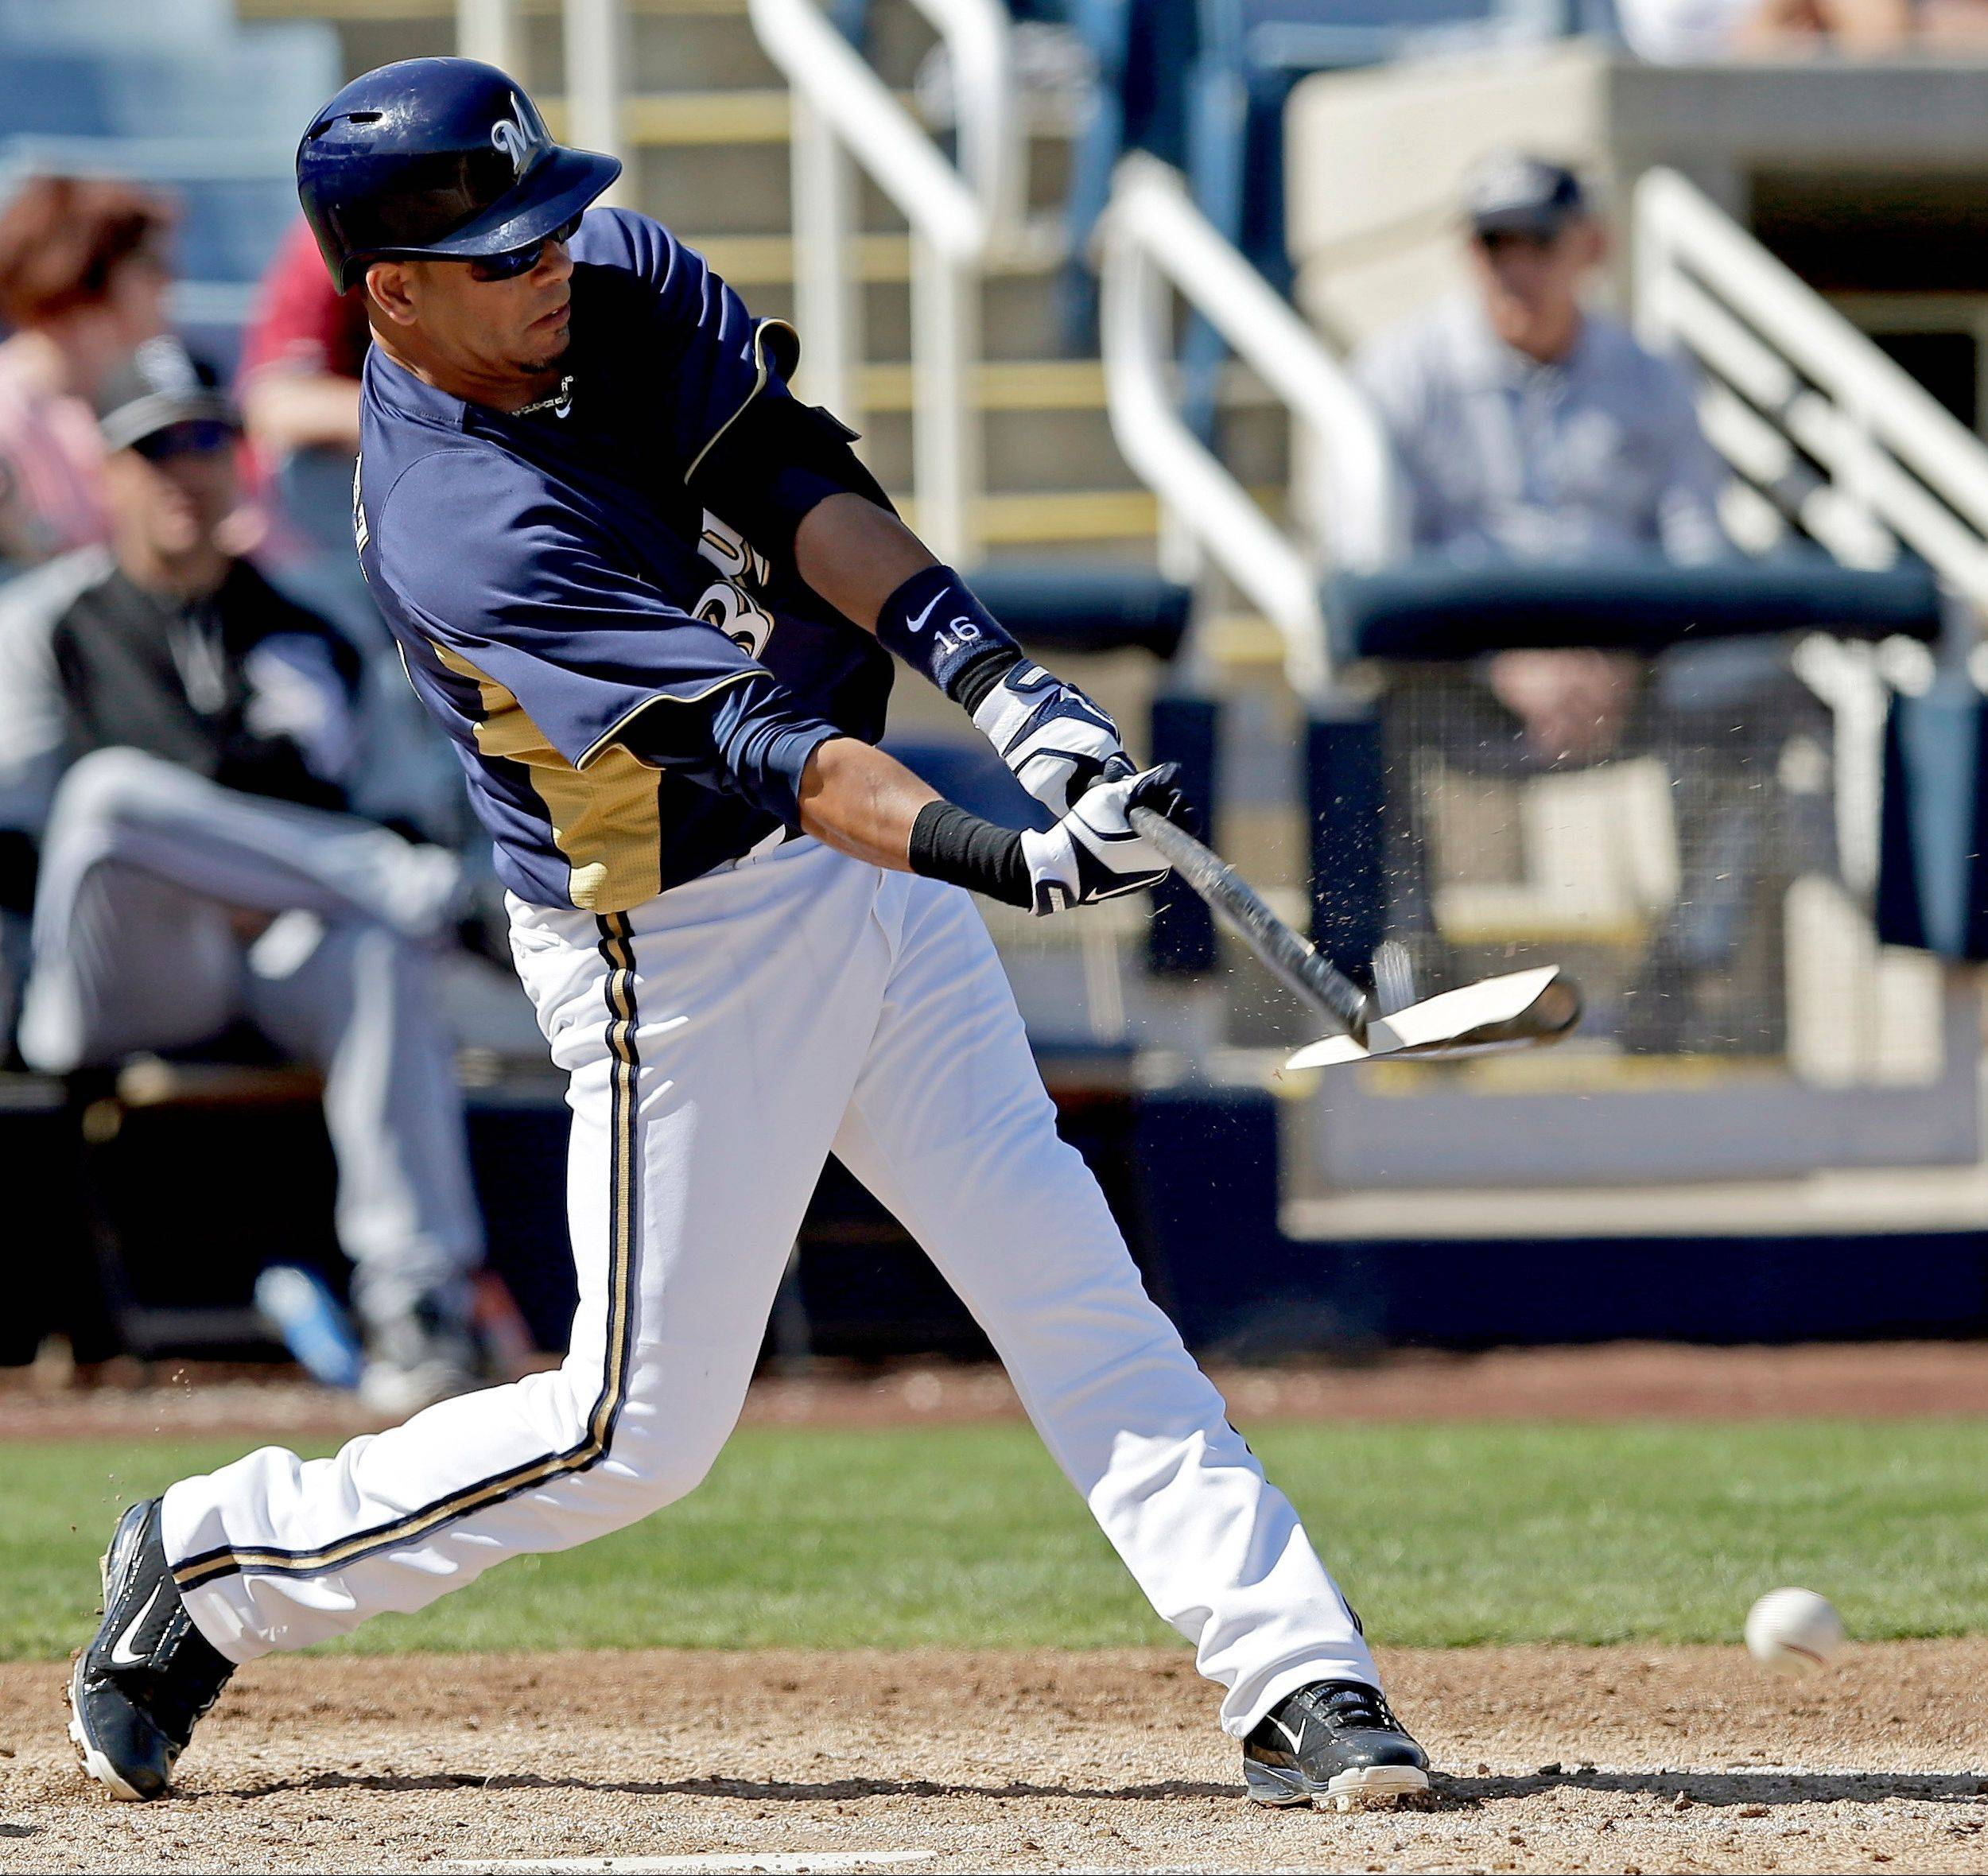 Milwaukee Brewers third baseman and former Cub Aramis Ramirez breaks his bat in an exhibition game last Thursday. Ram